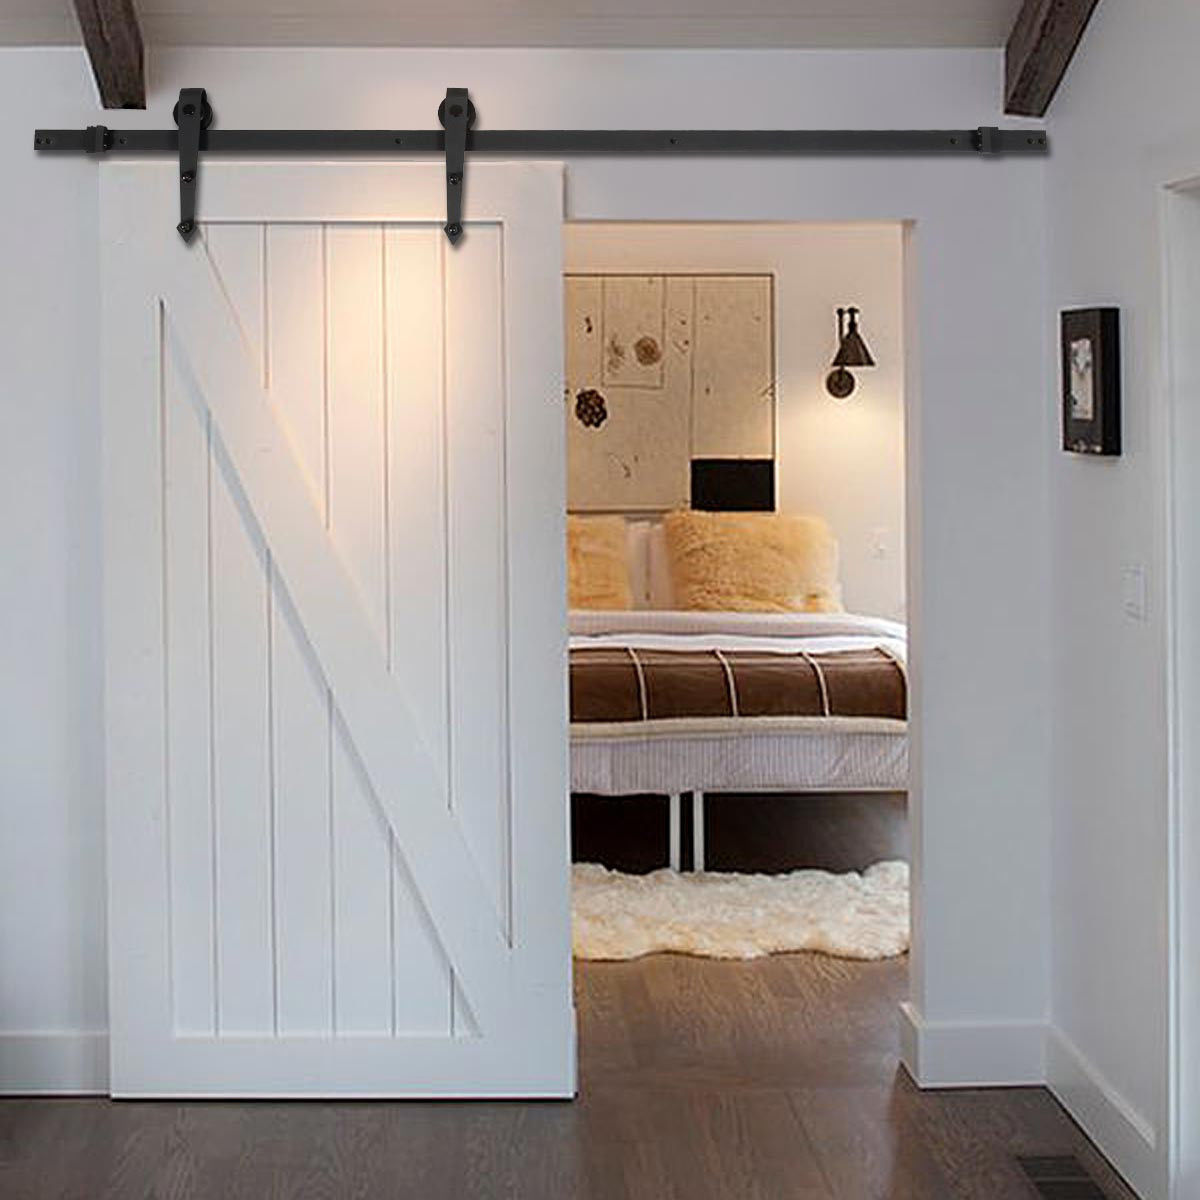 Costway 6 FT Black Modern Antique Style Sliding Barn Wood Door Hardware Closet Set